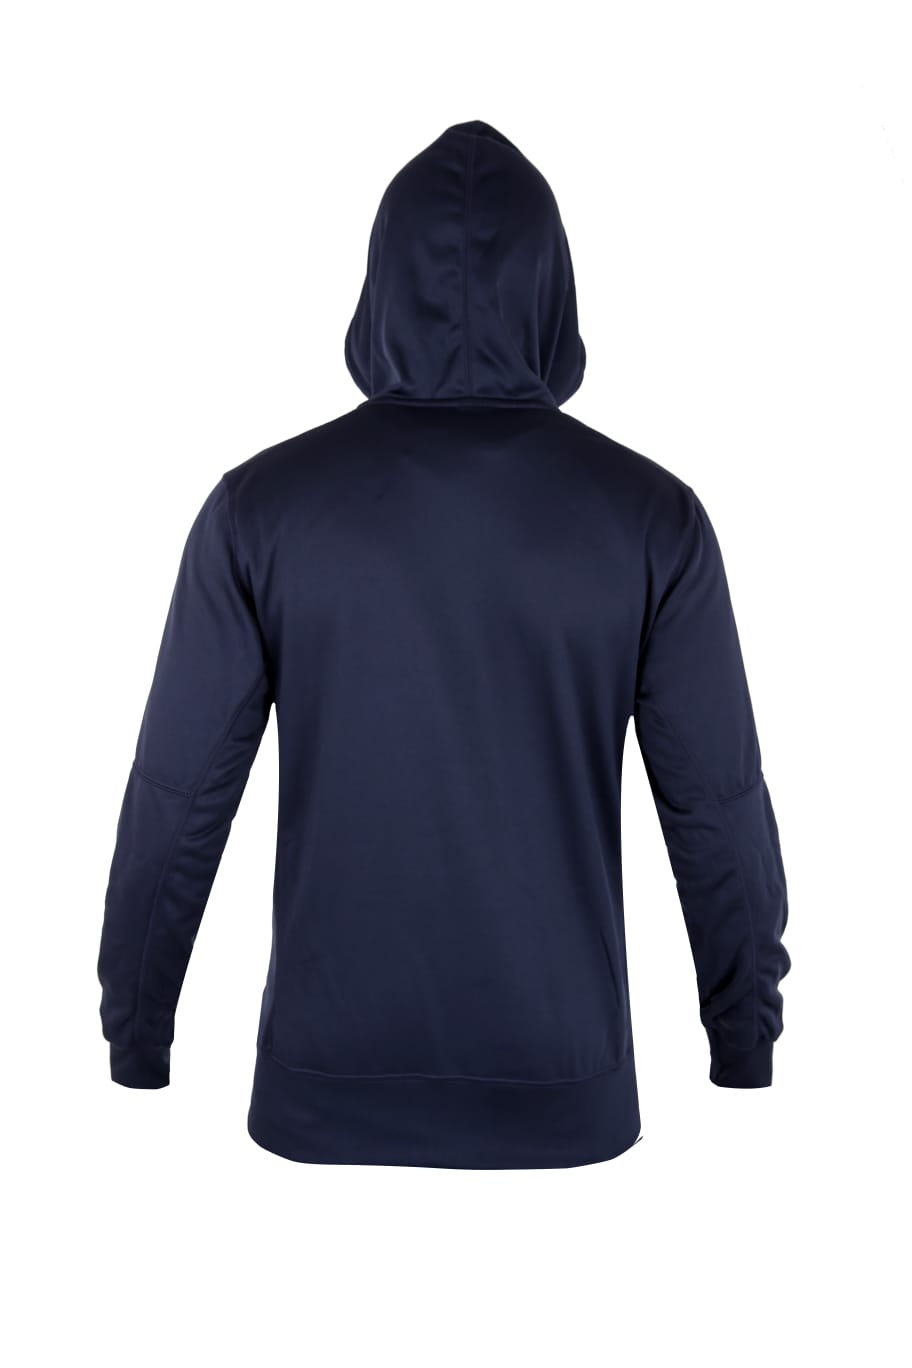 GiG Movement Blue Navy Hoodie